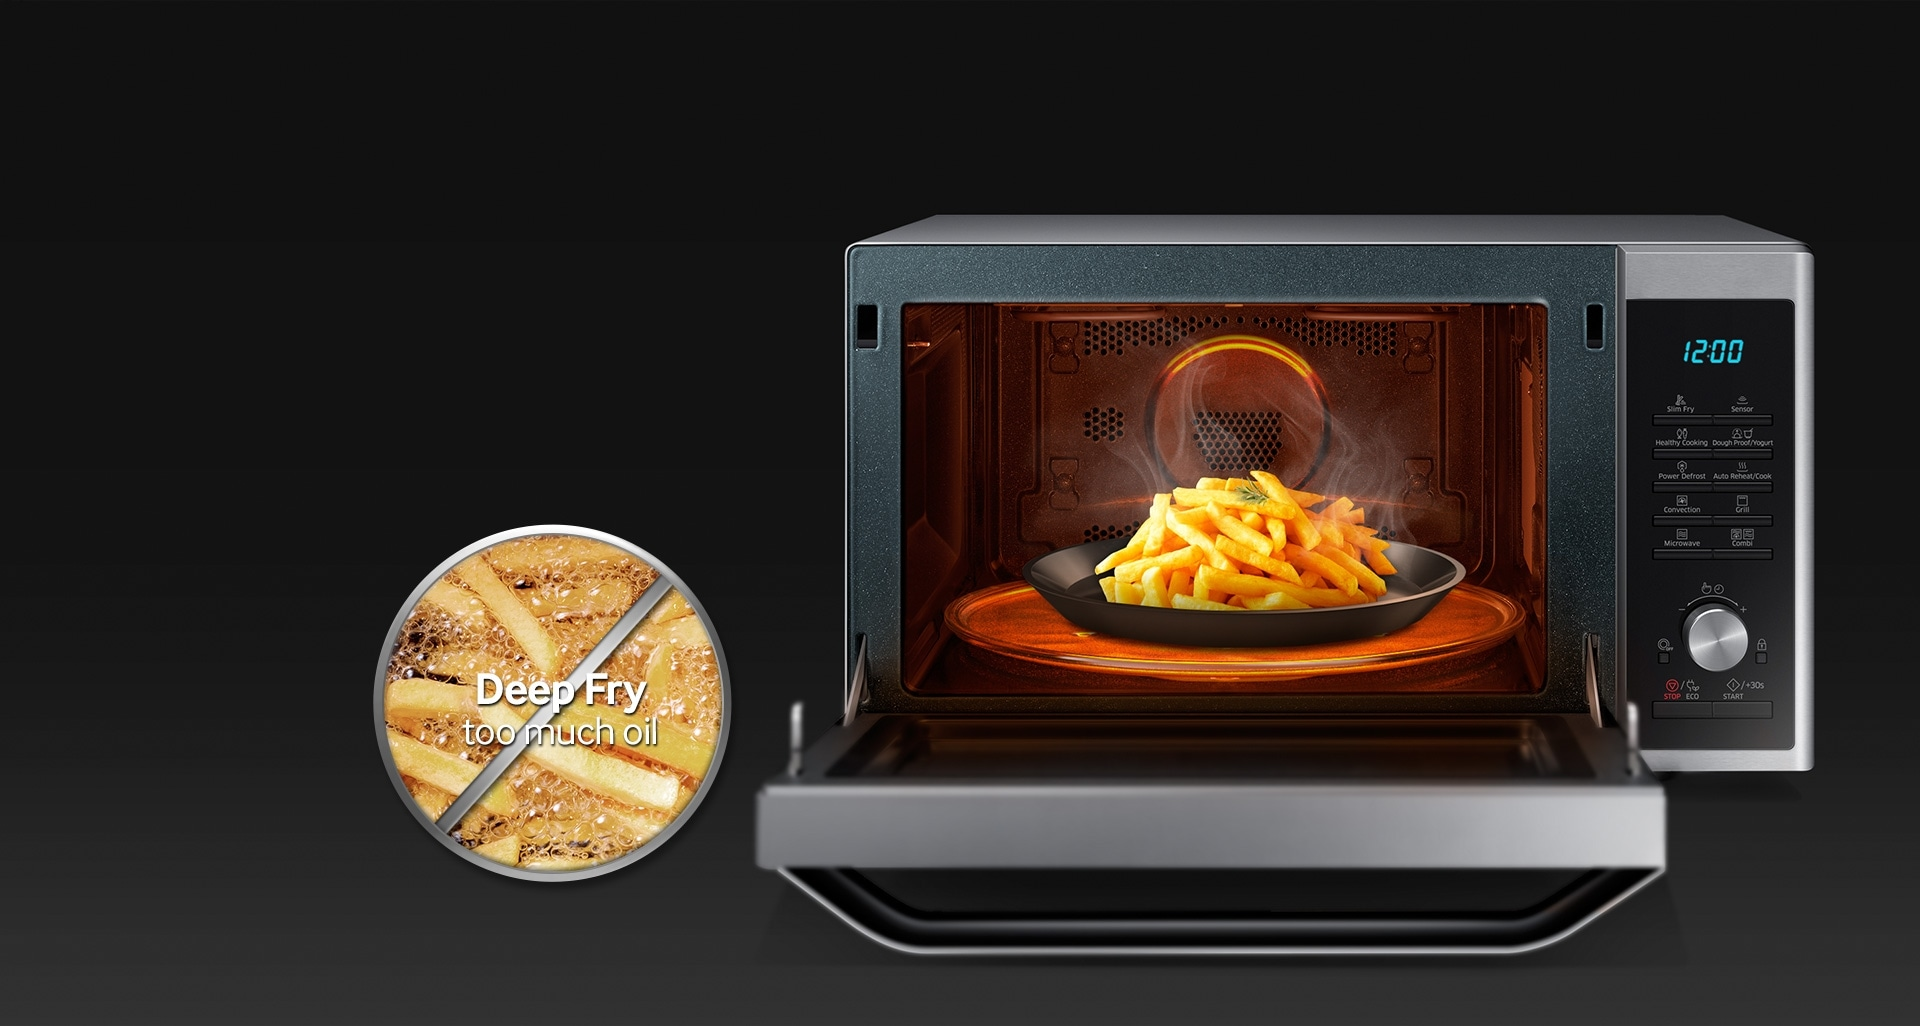 Oven with slim fry